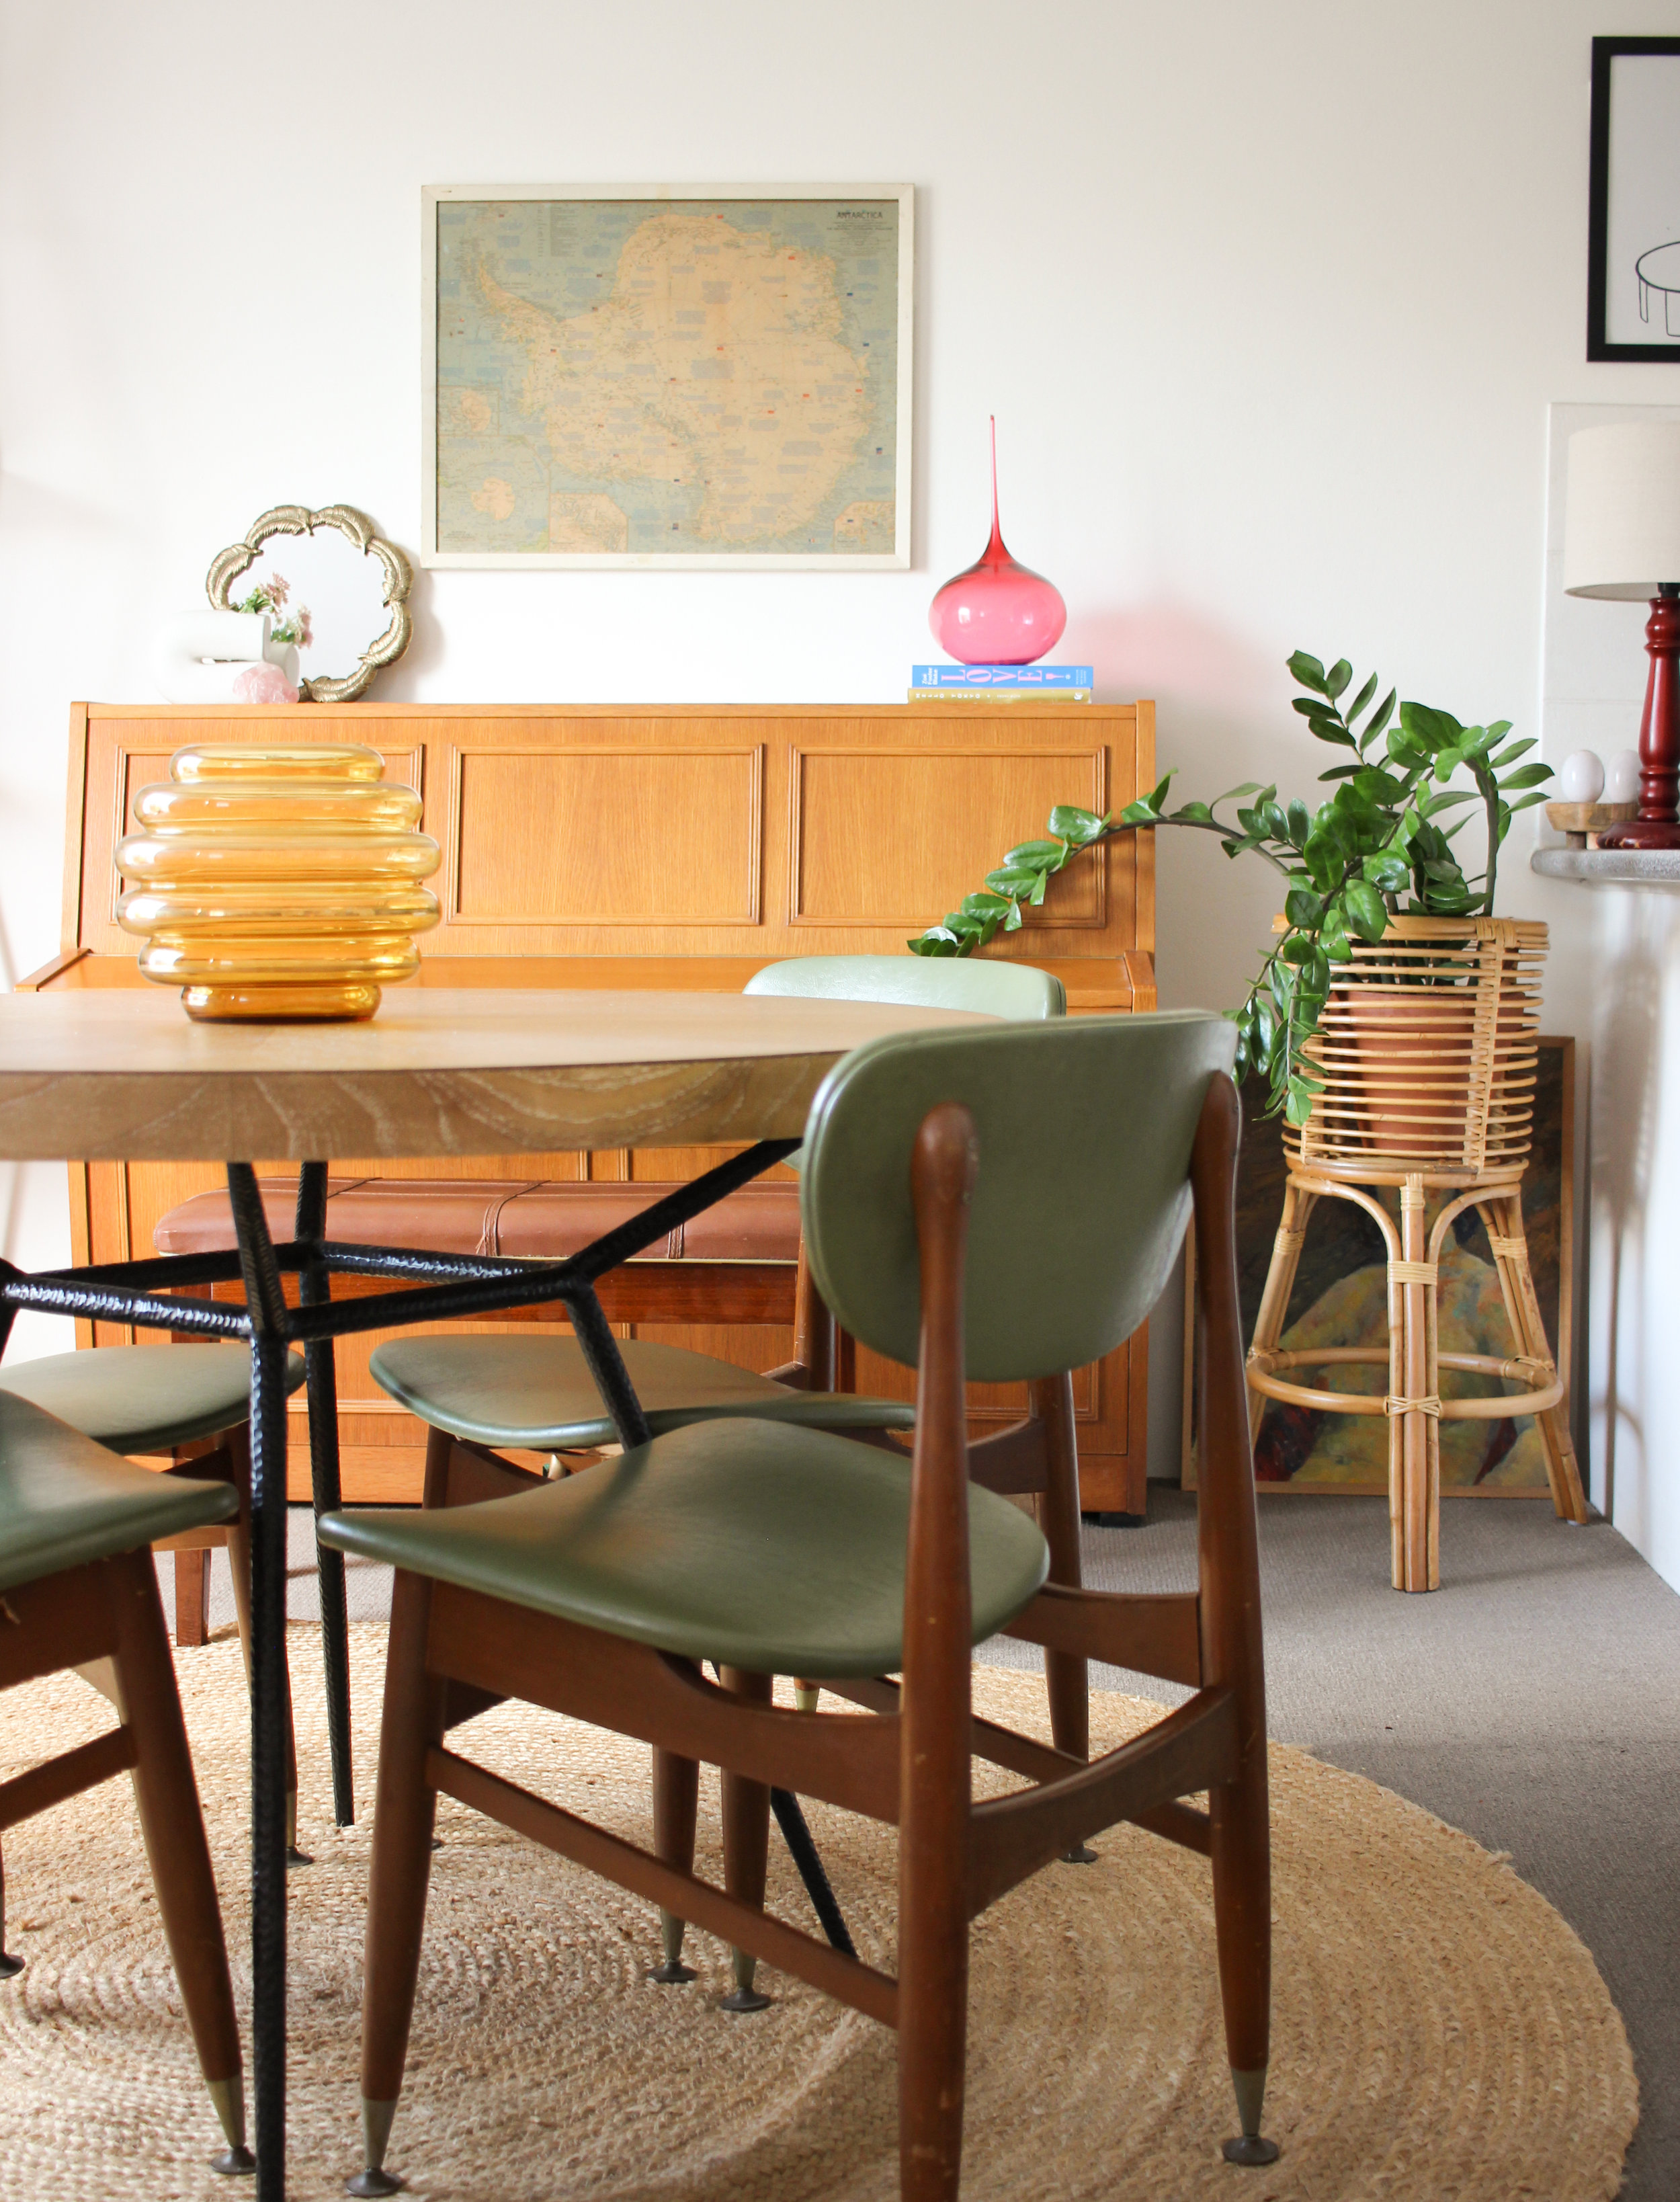 The combination of my feature dining chairs & my more simplistic dining table work really well together!